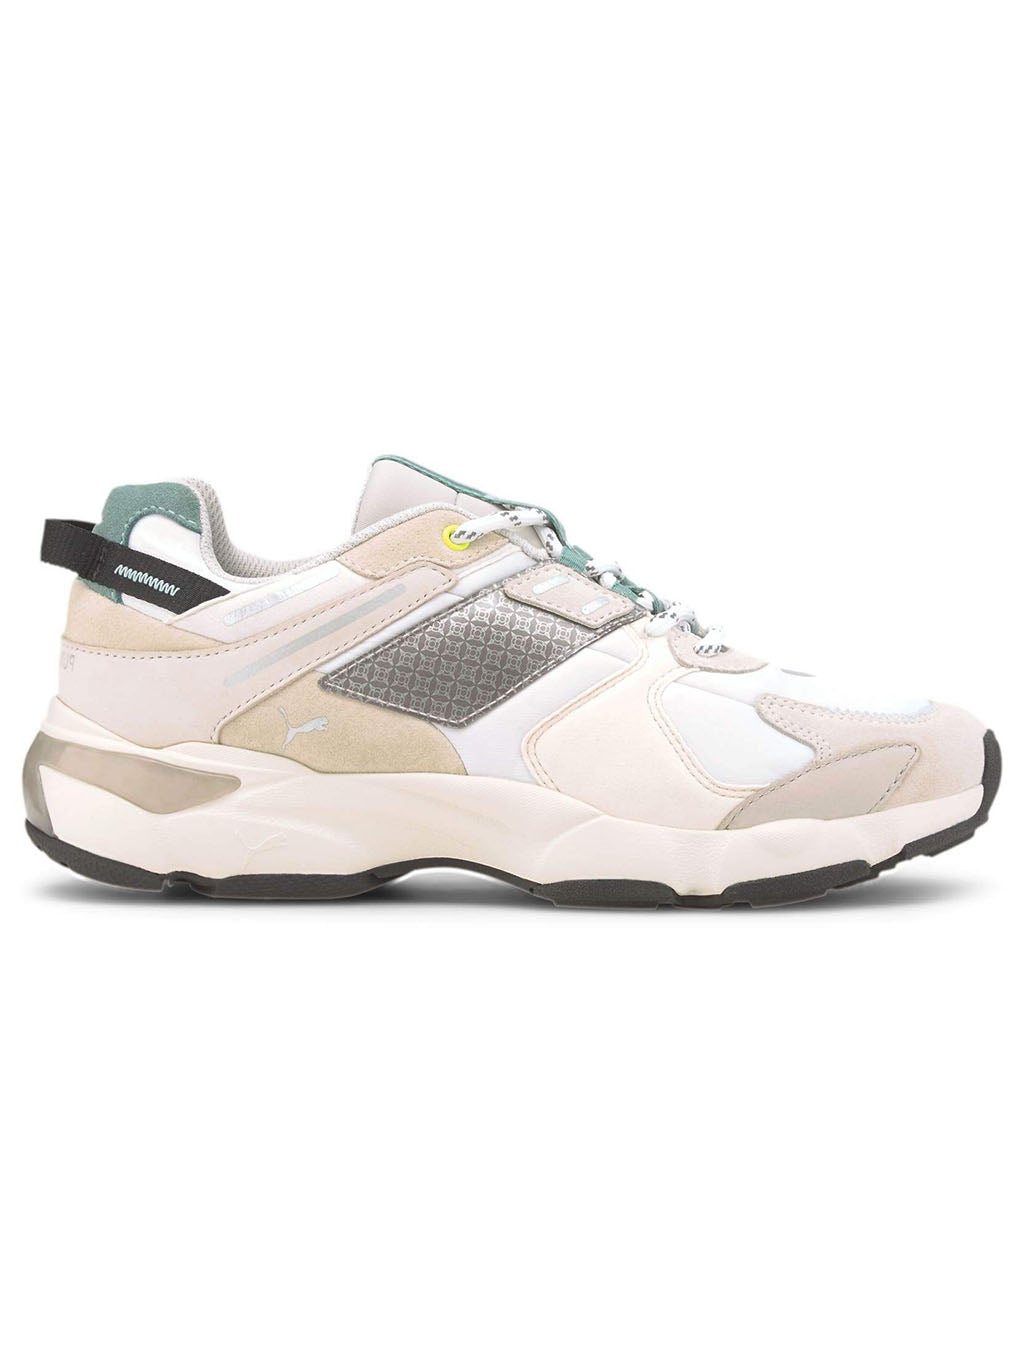 White LQD CEll Extoll Sneakers